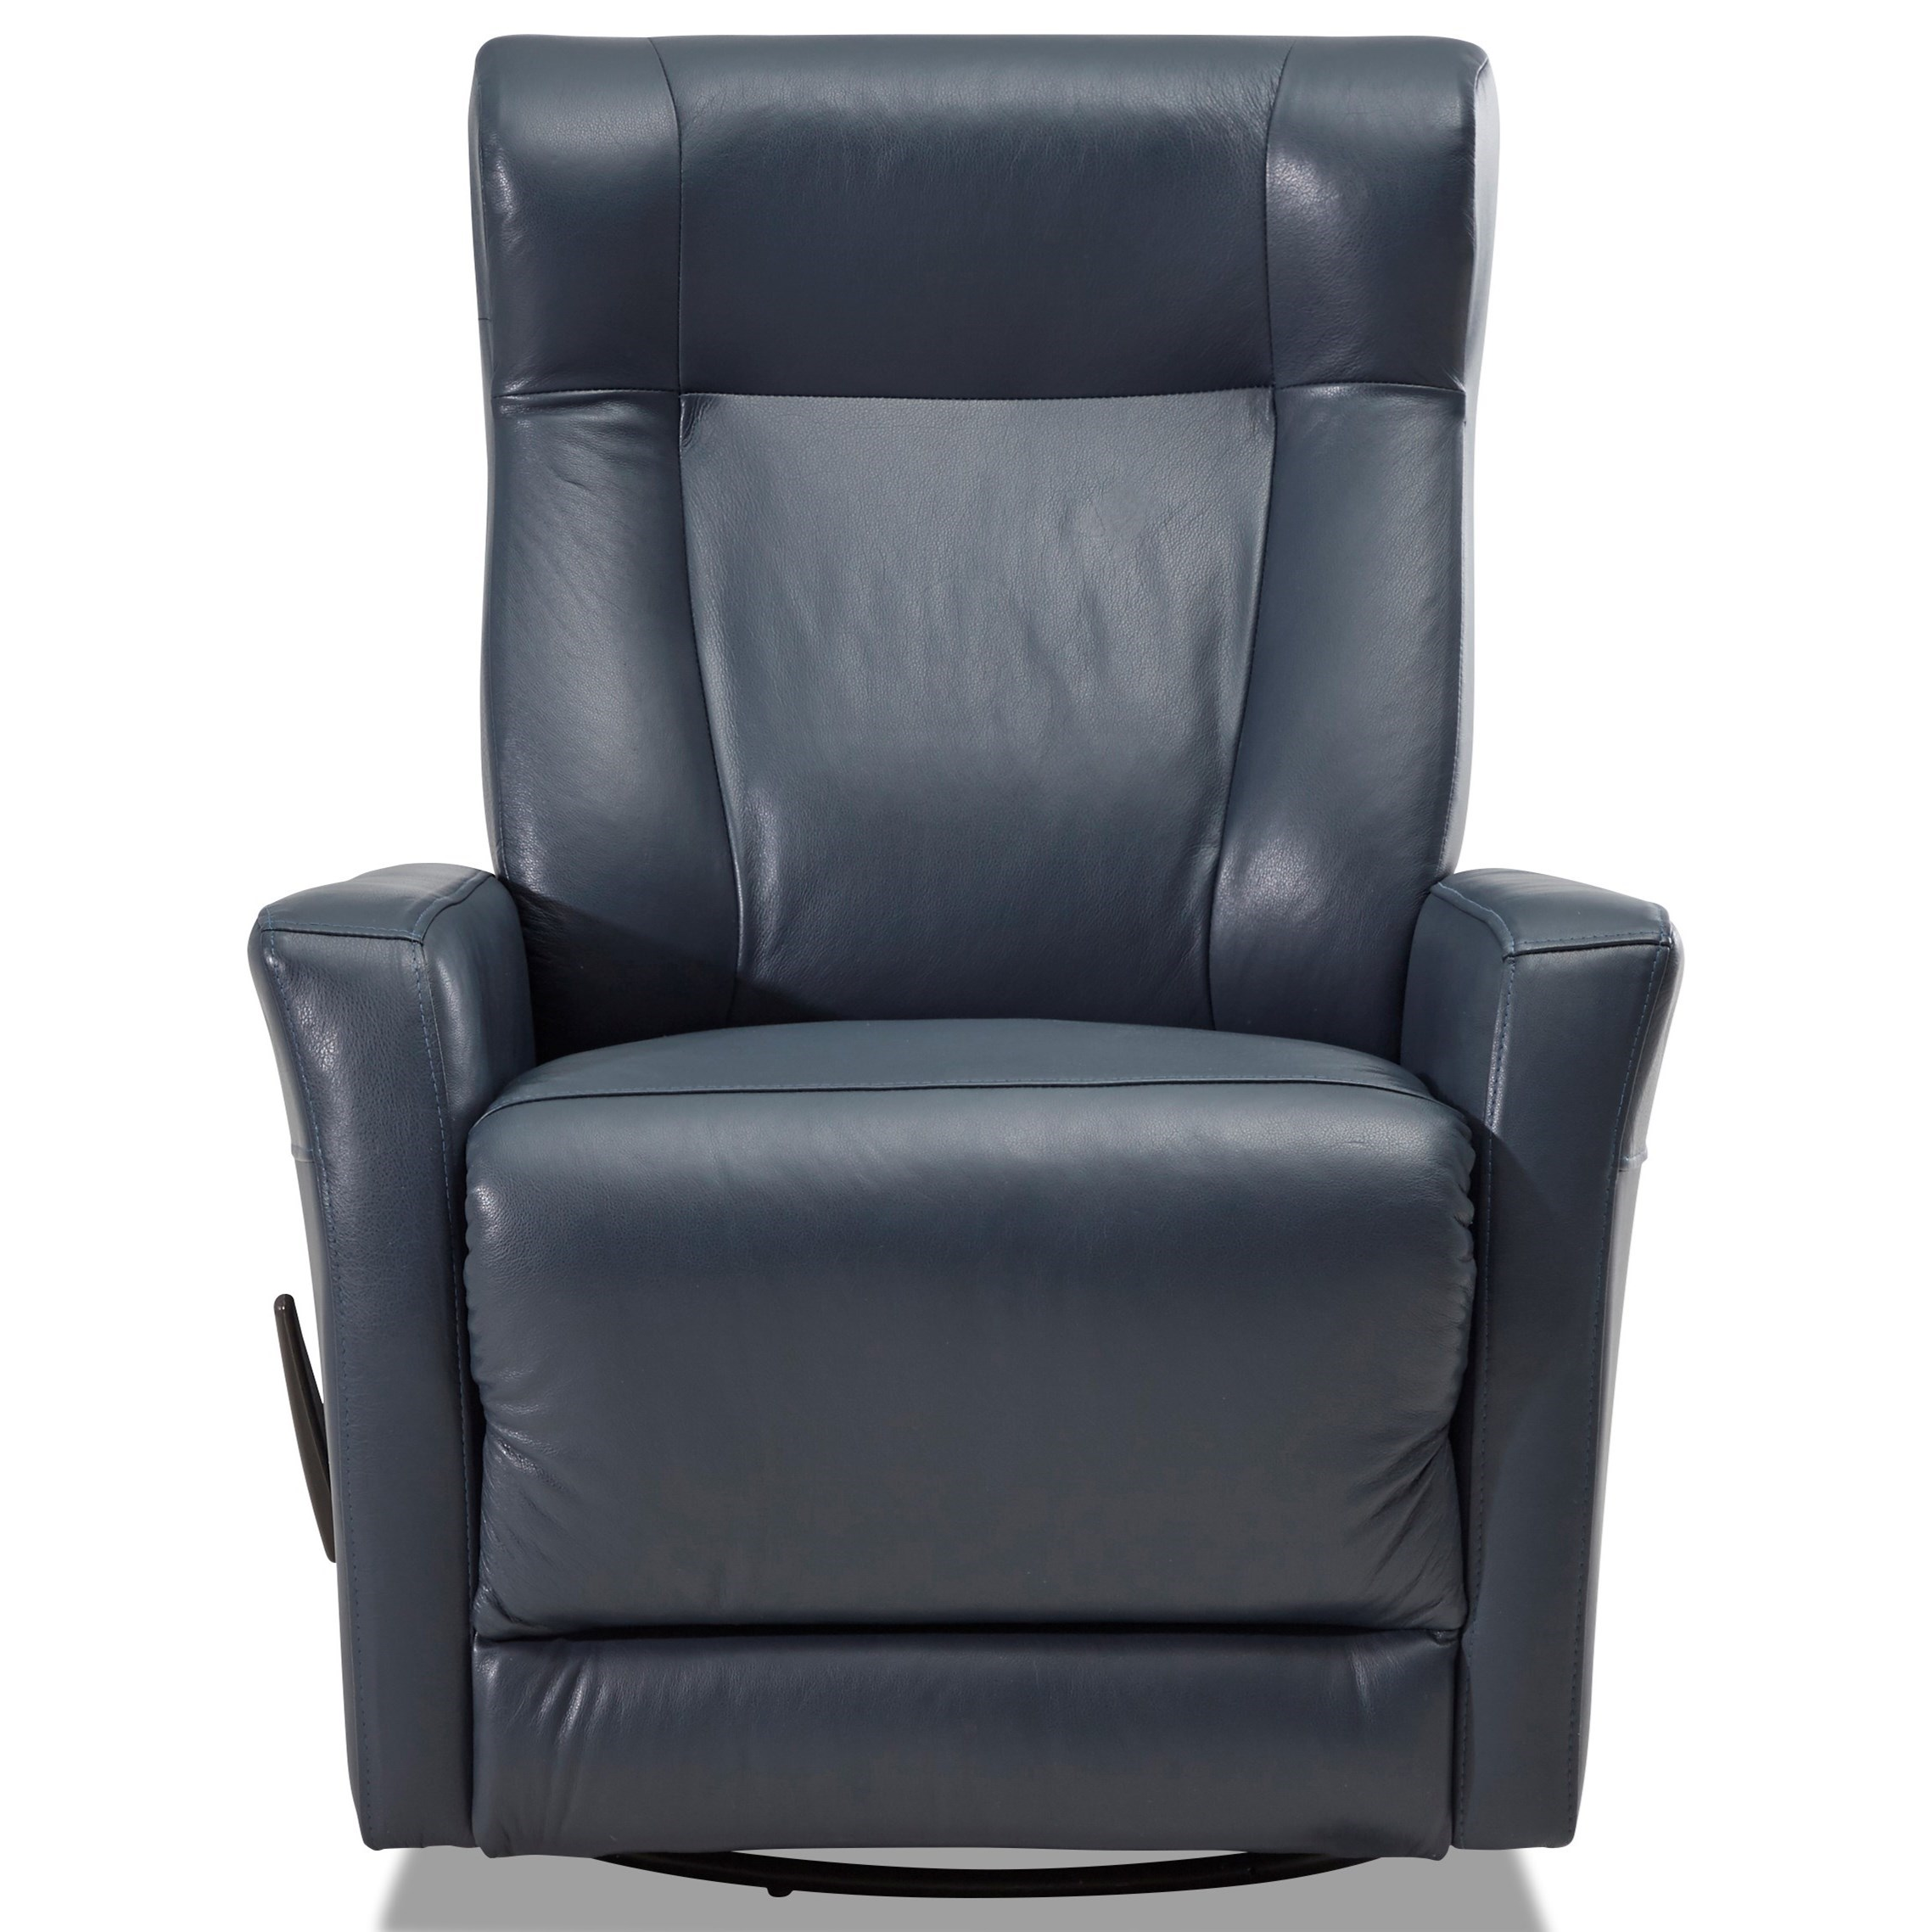 Mercury Manual Recliner  by Klaussner at Northeast Factory Direct